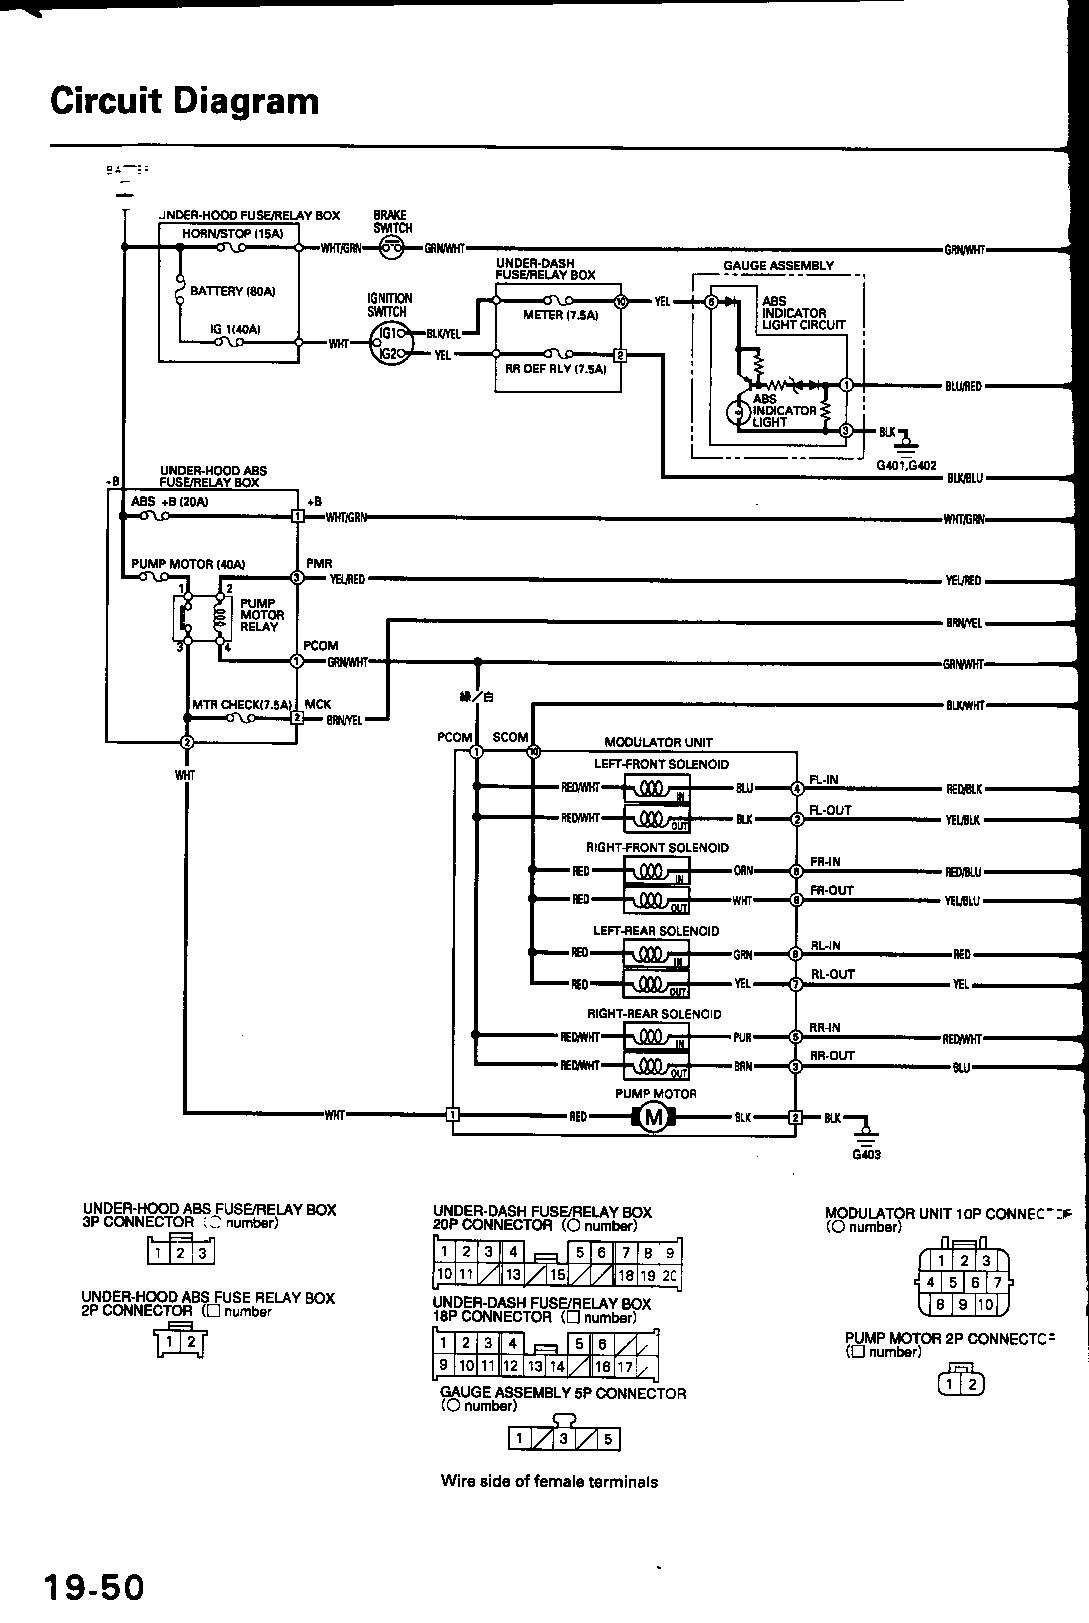 94 honda civic speaker wiring diagram get free image about wiring diagram